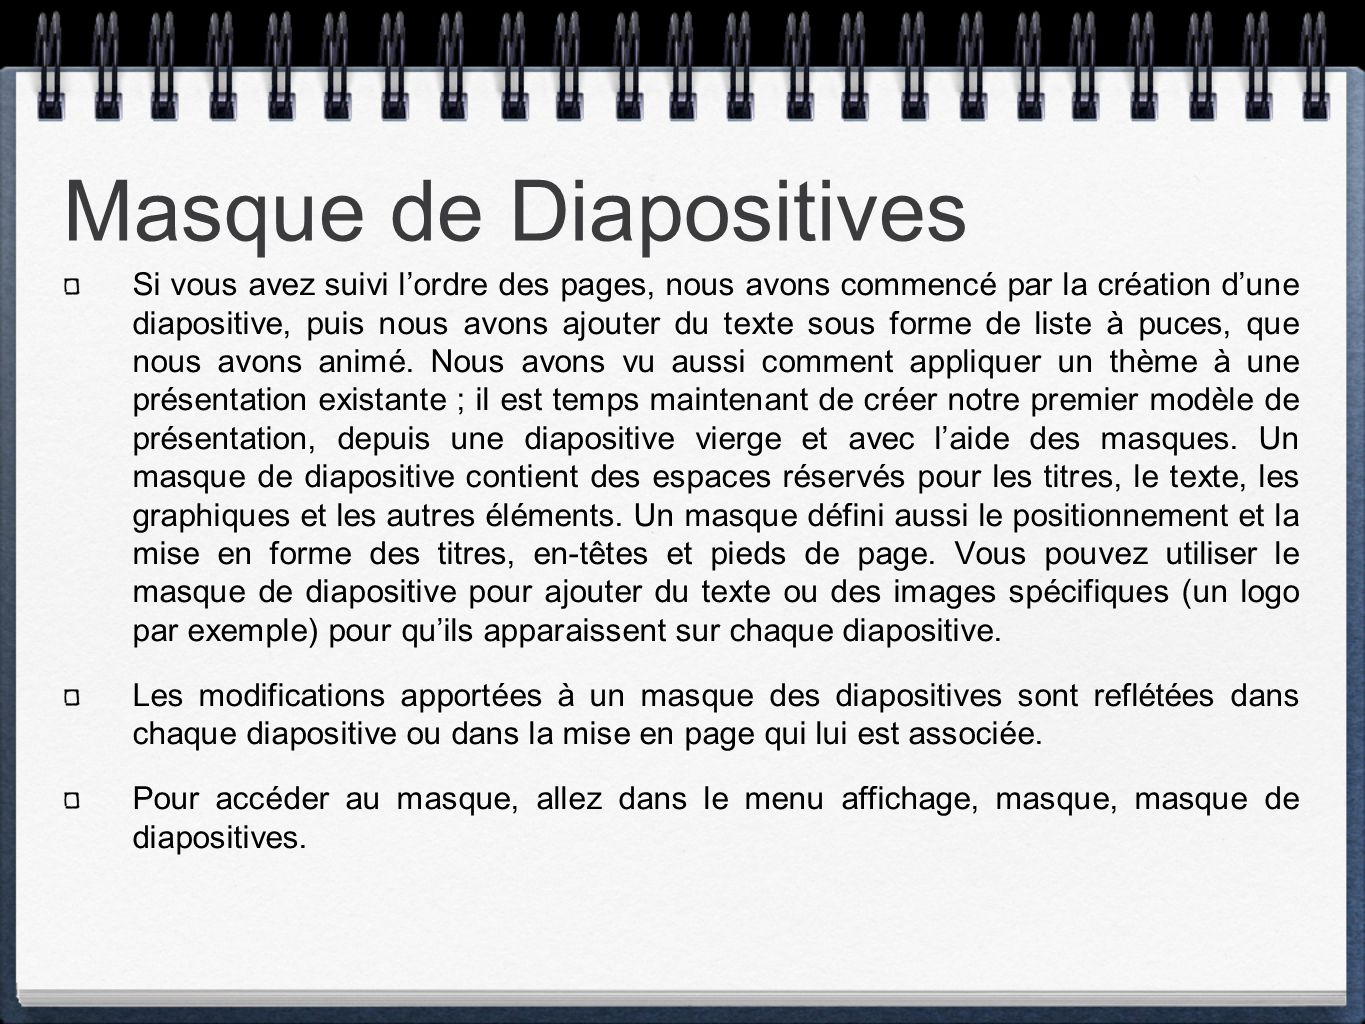 Masque de Diapositives